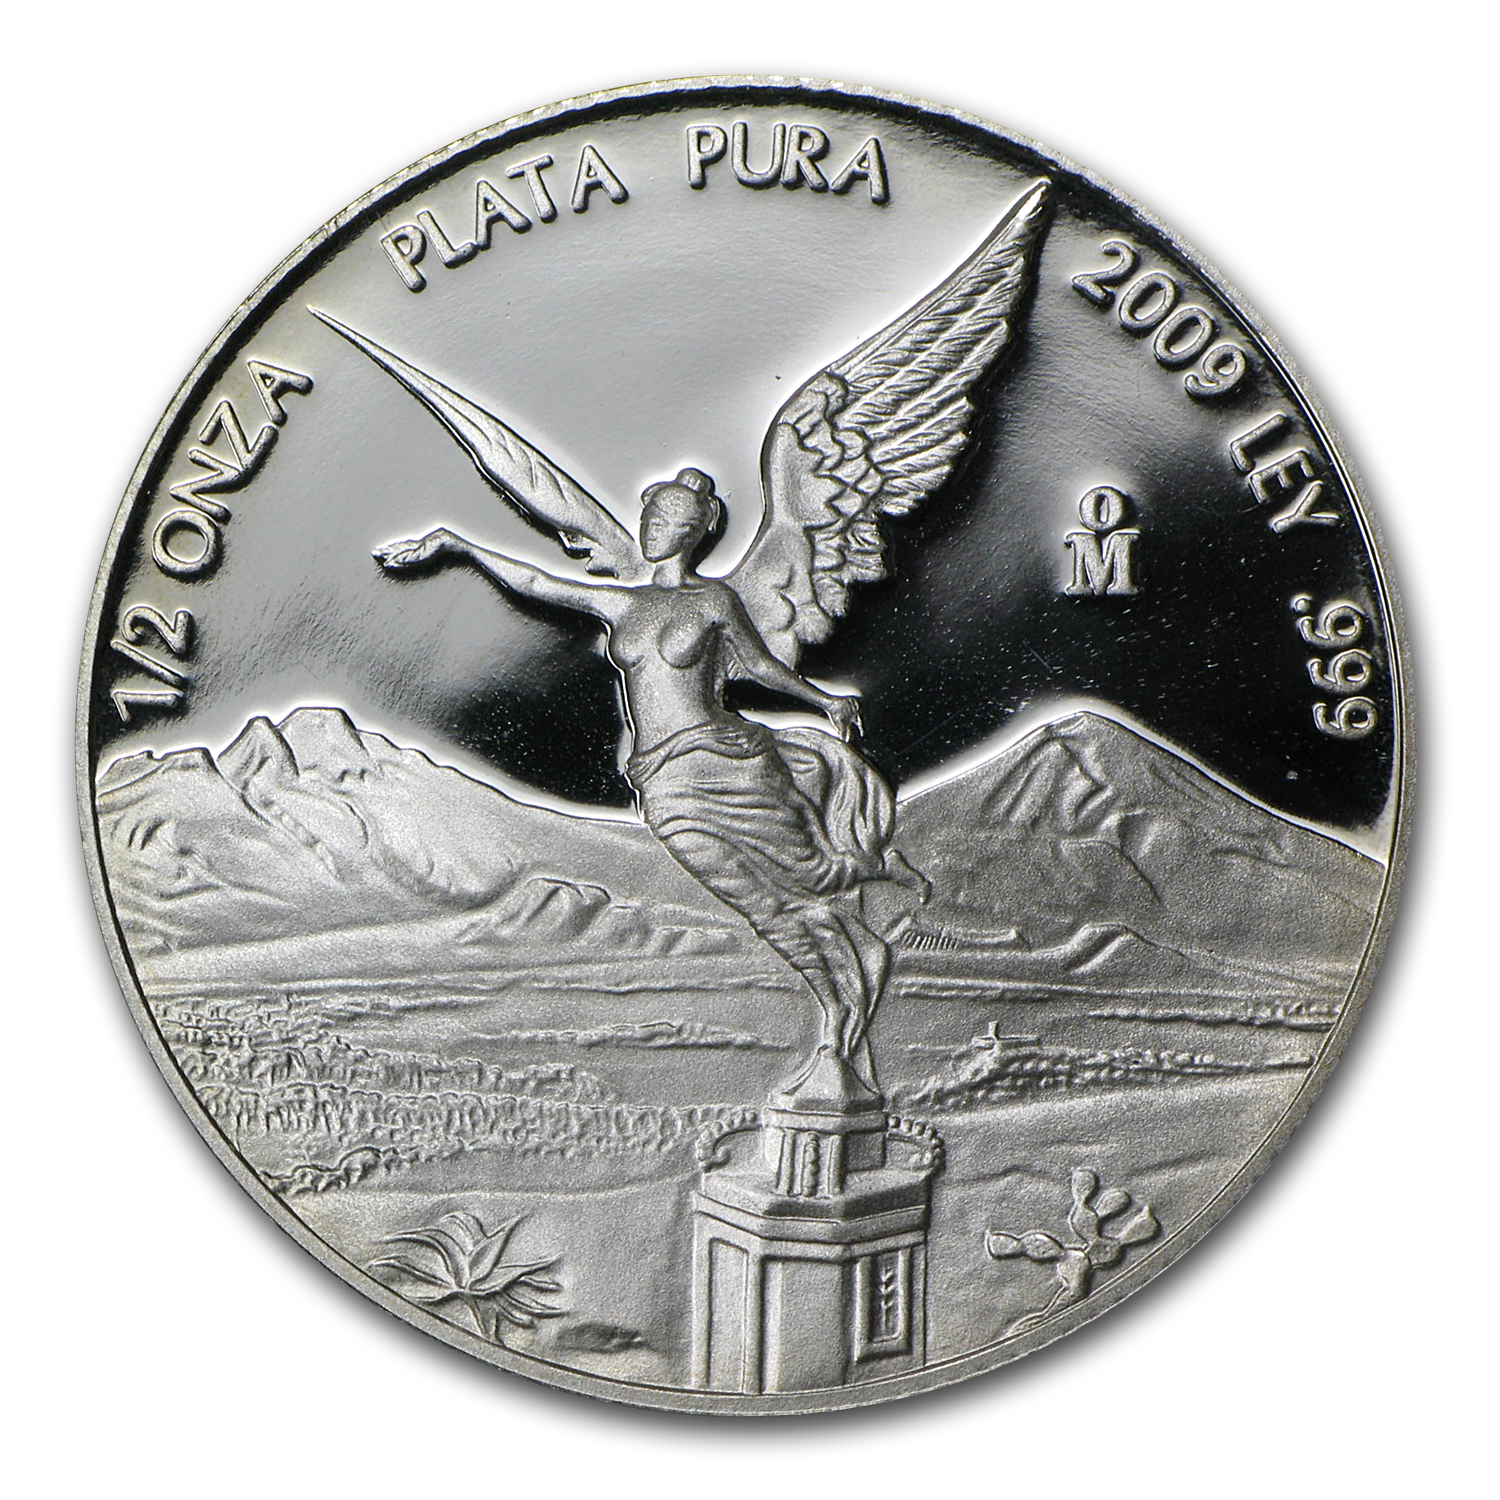 2009 1/2 oz Silver Mexican Libertad - Proof (In Capsule)